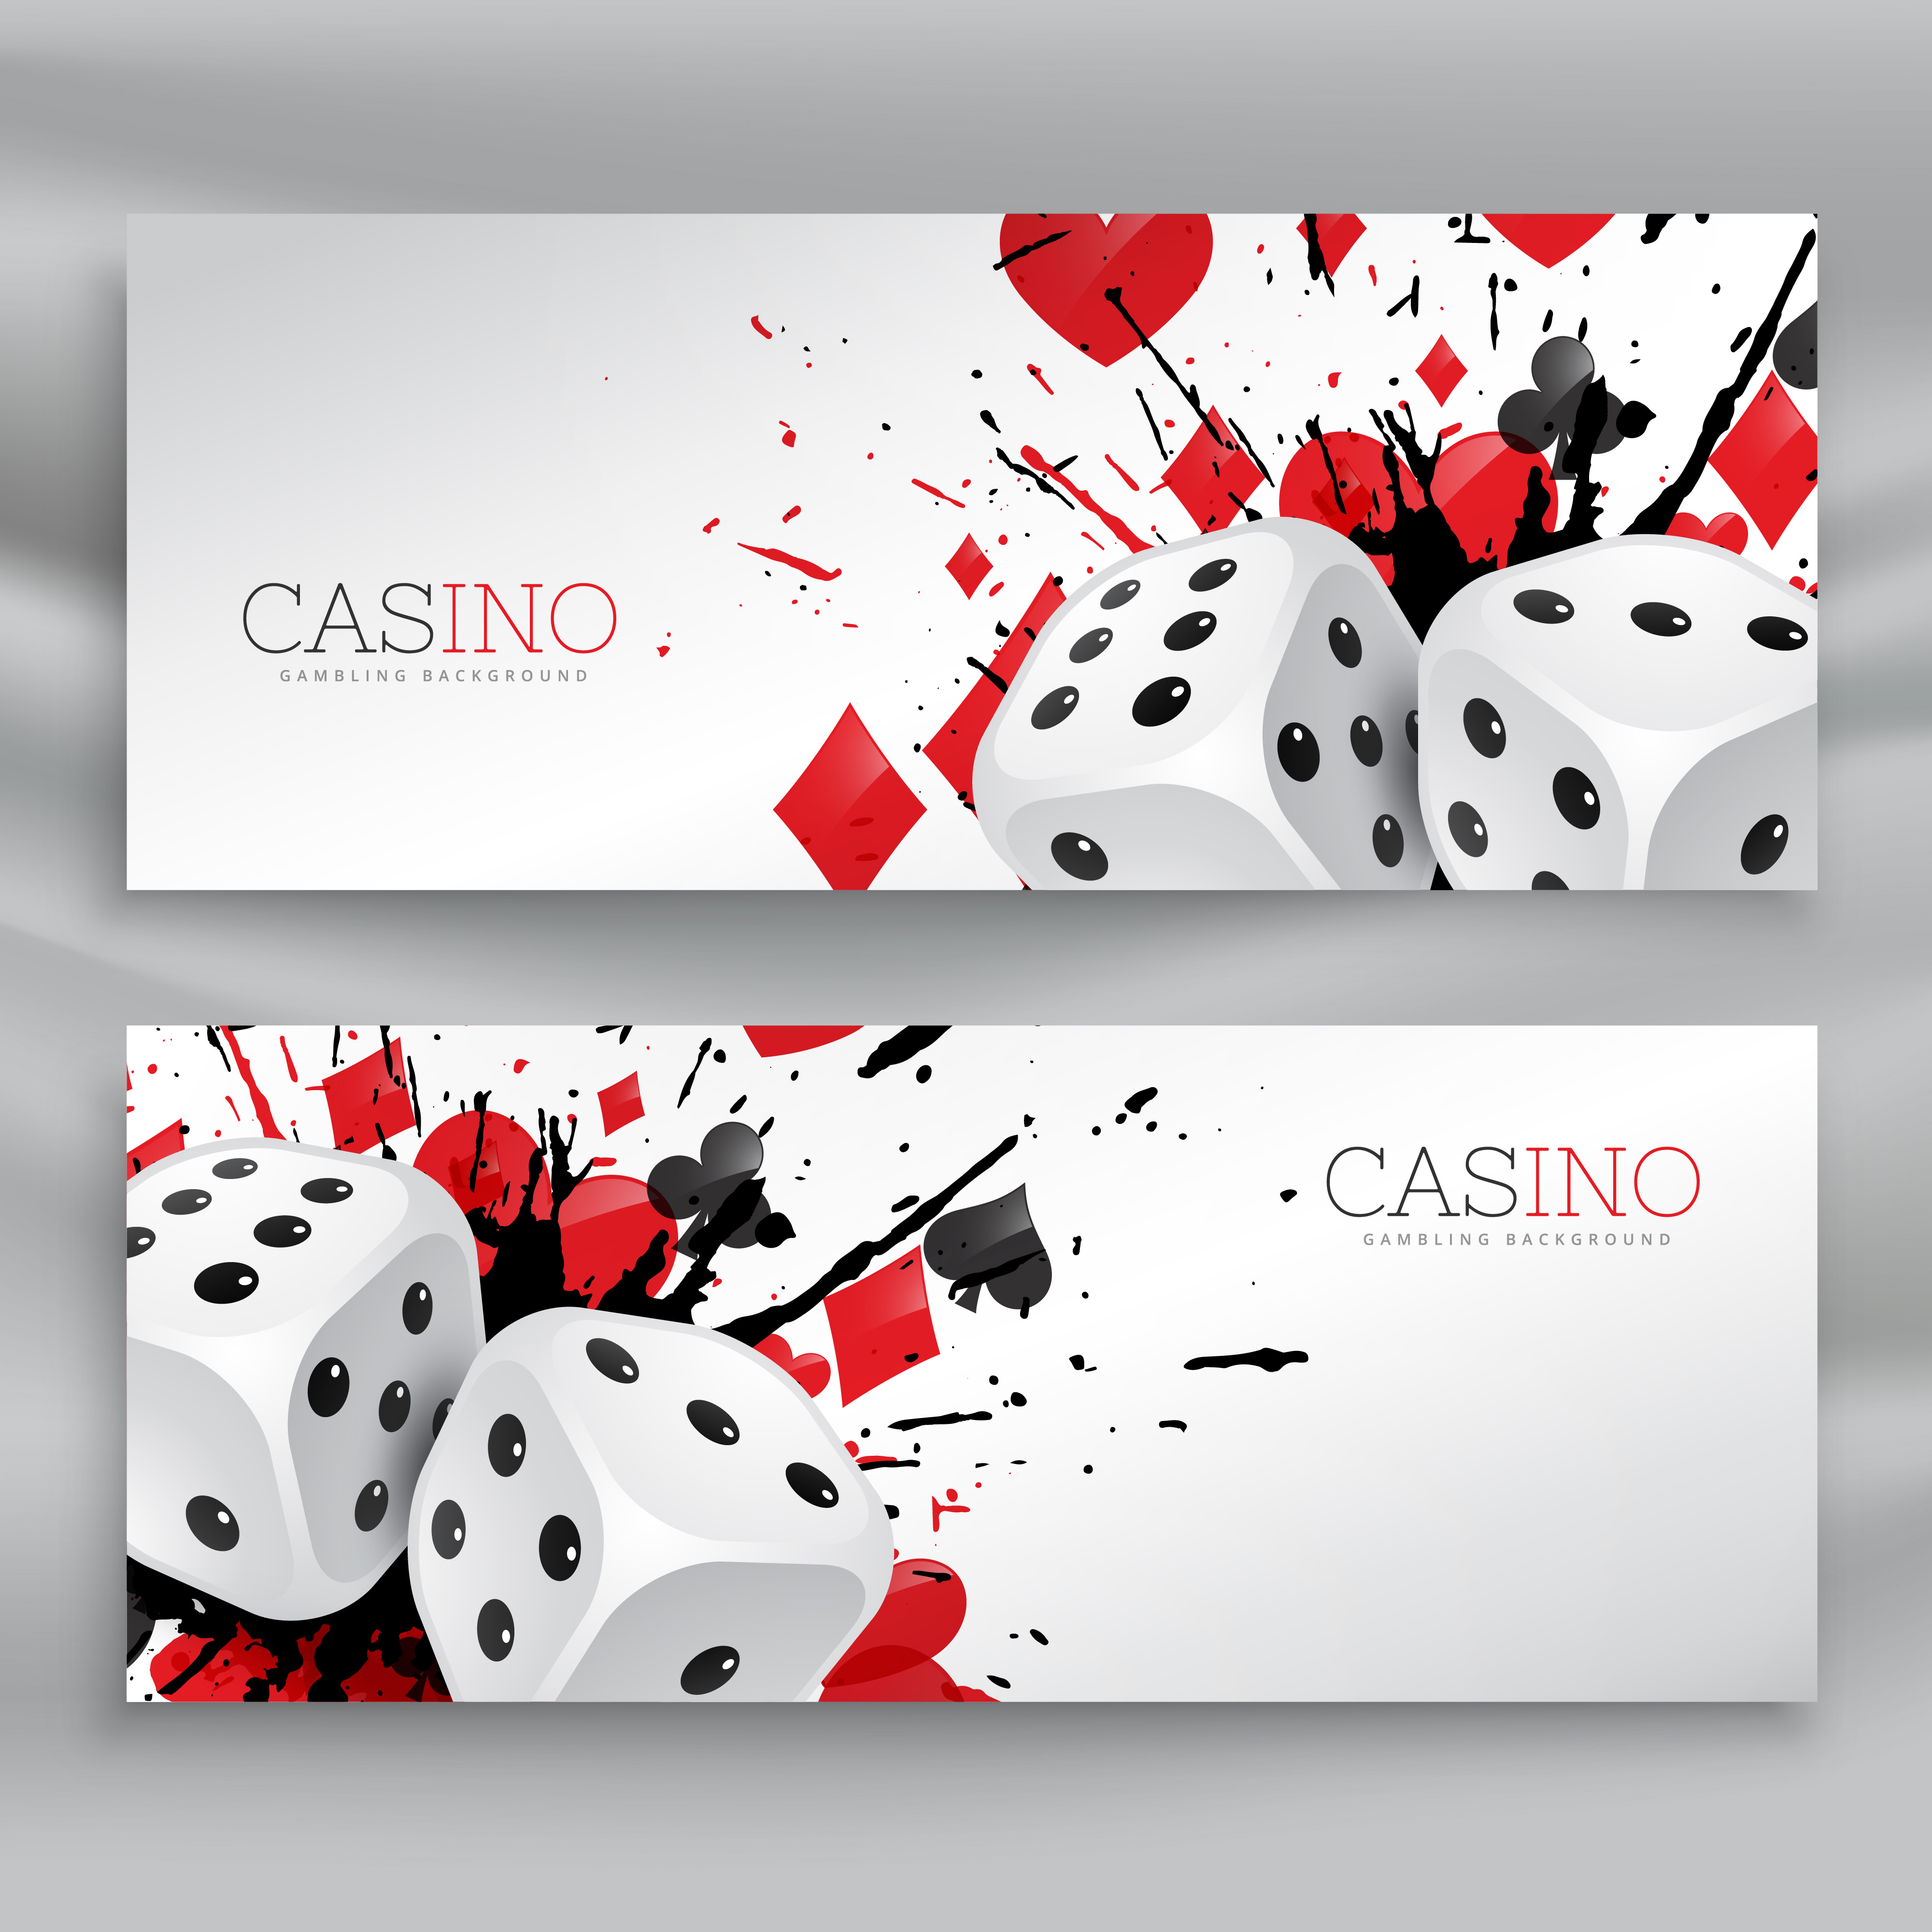 Casino Banner Images | Free Vectors, Stock Photos & PSD